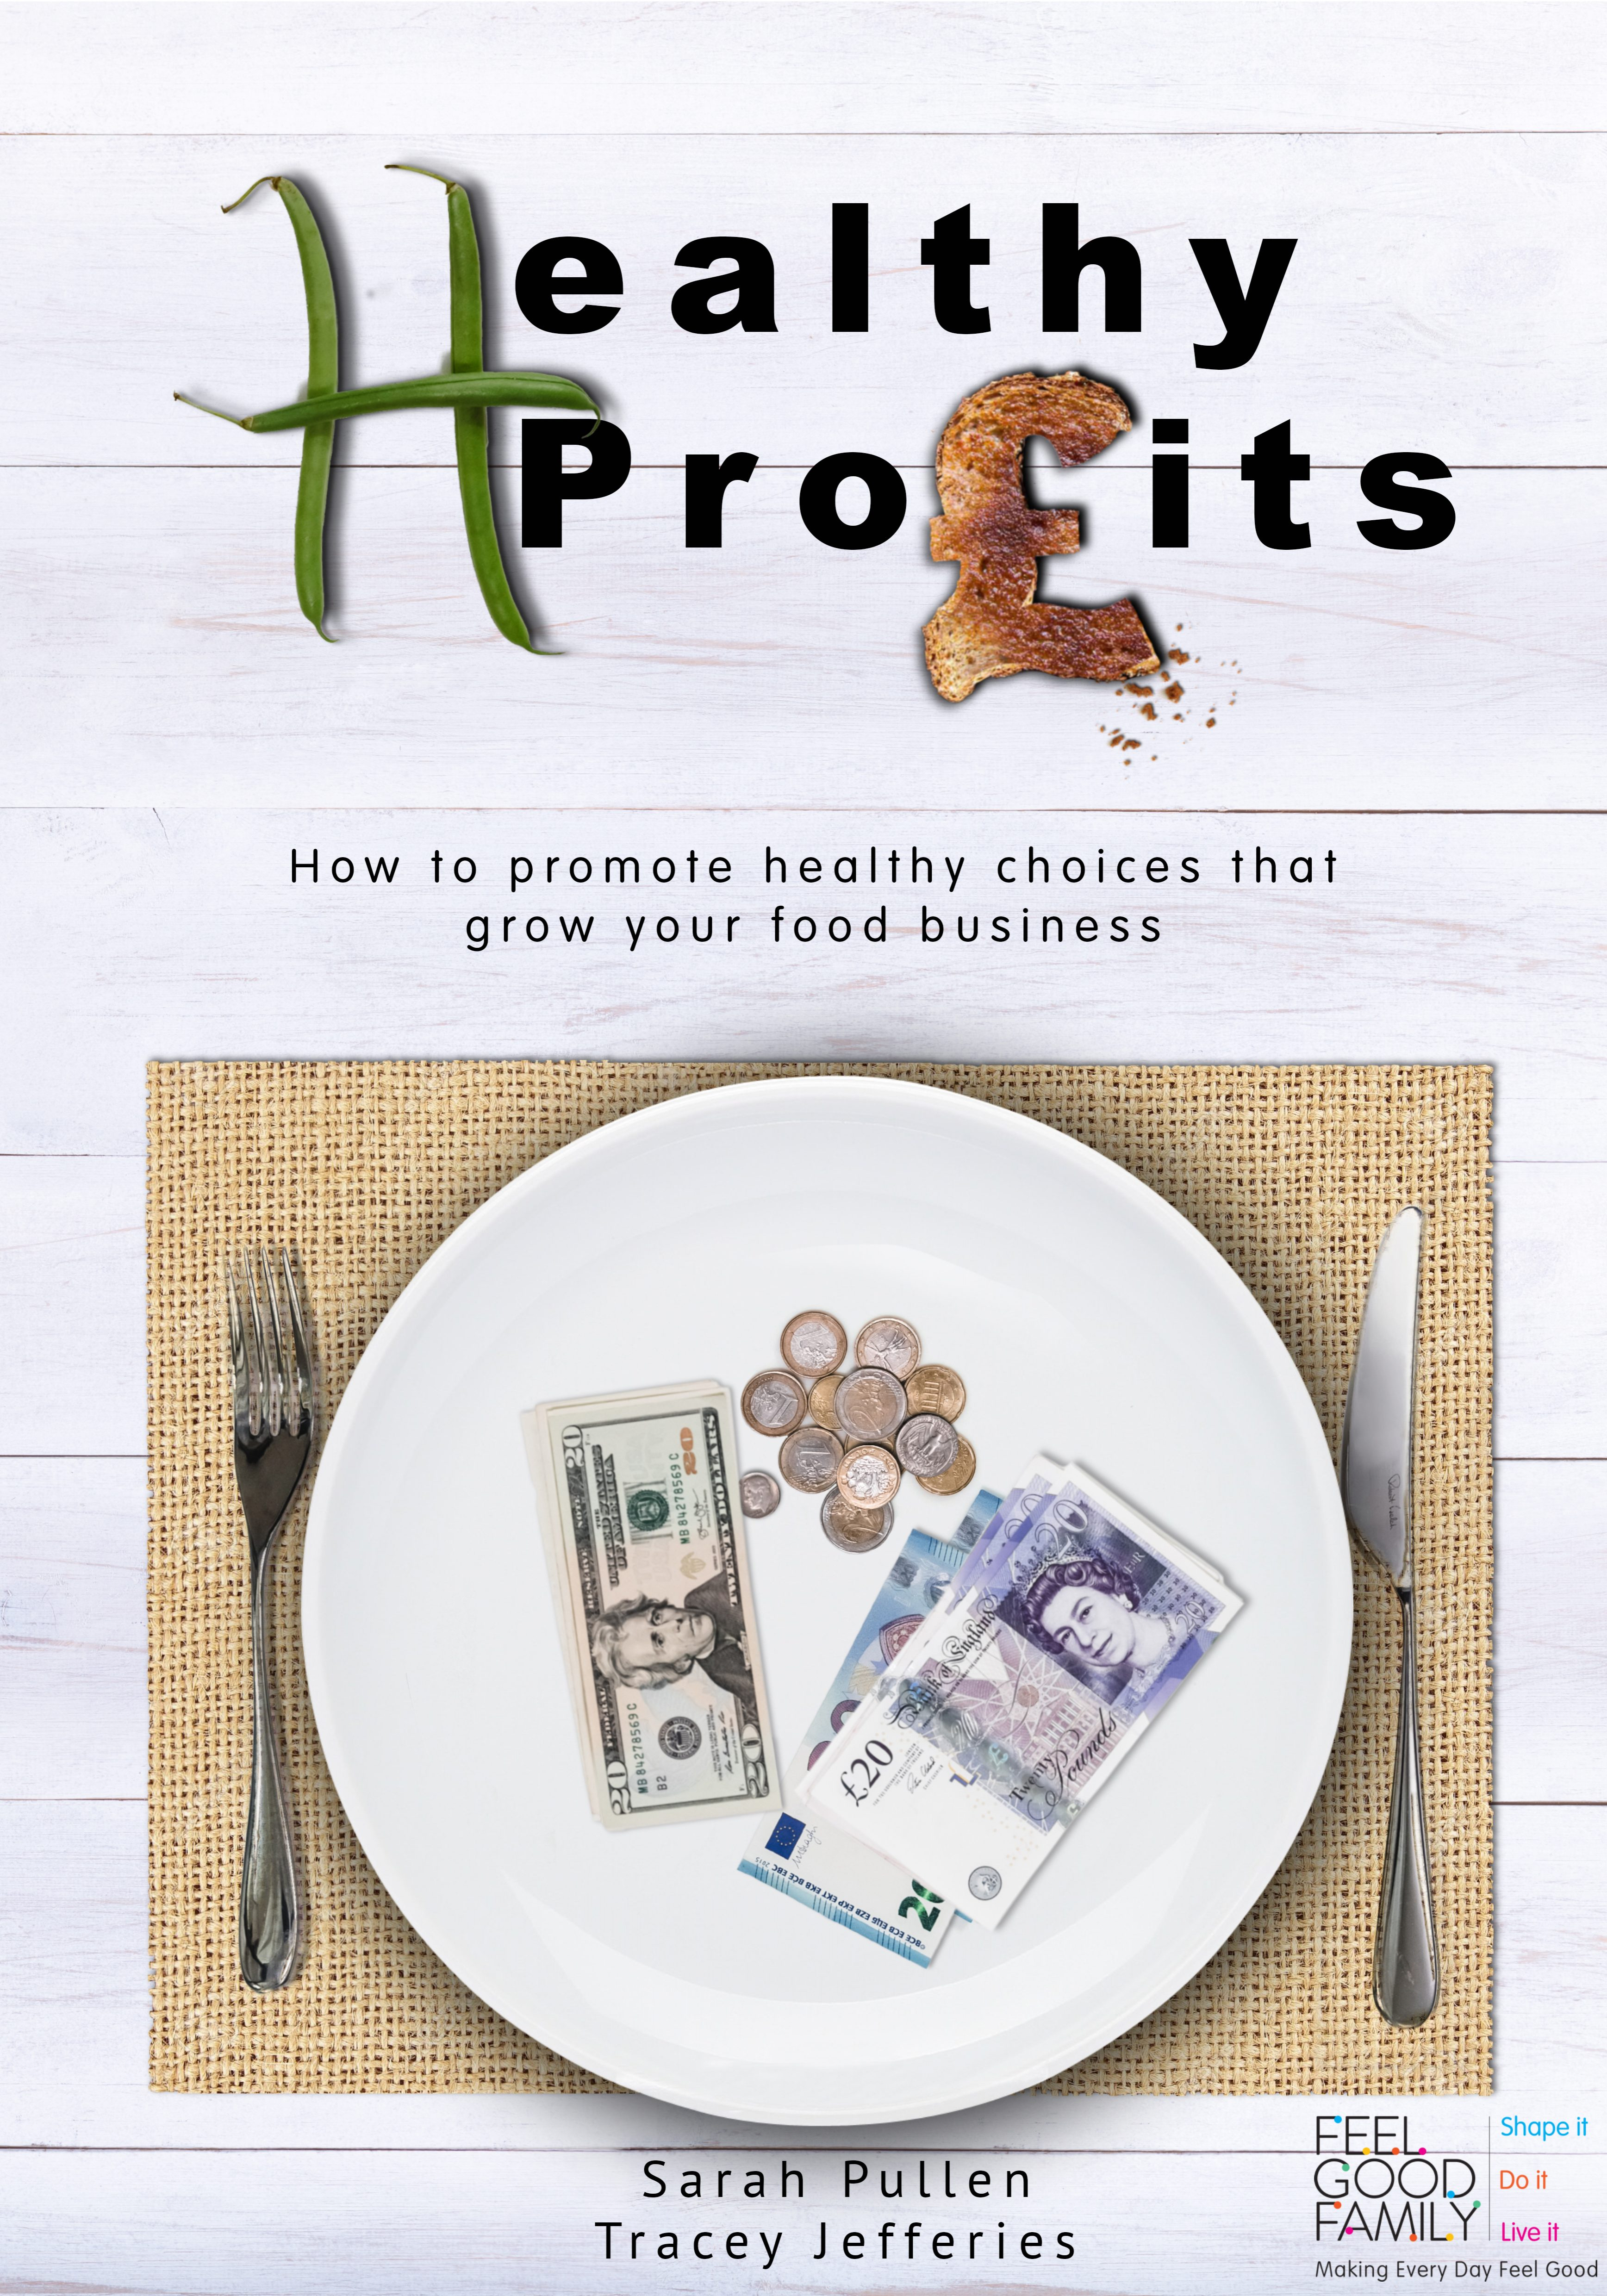 Healthy Profits book. How to promote healthy choices that grow your food business. By Sarah Pullen and Tracey Jefferies. Feel Good Family.